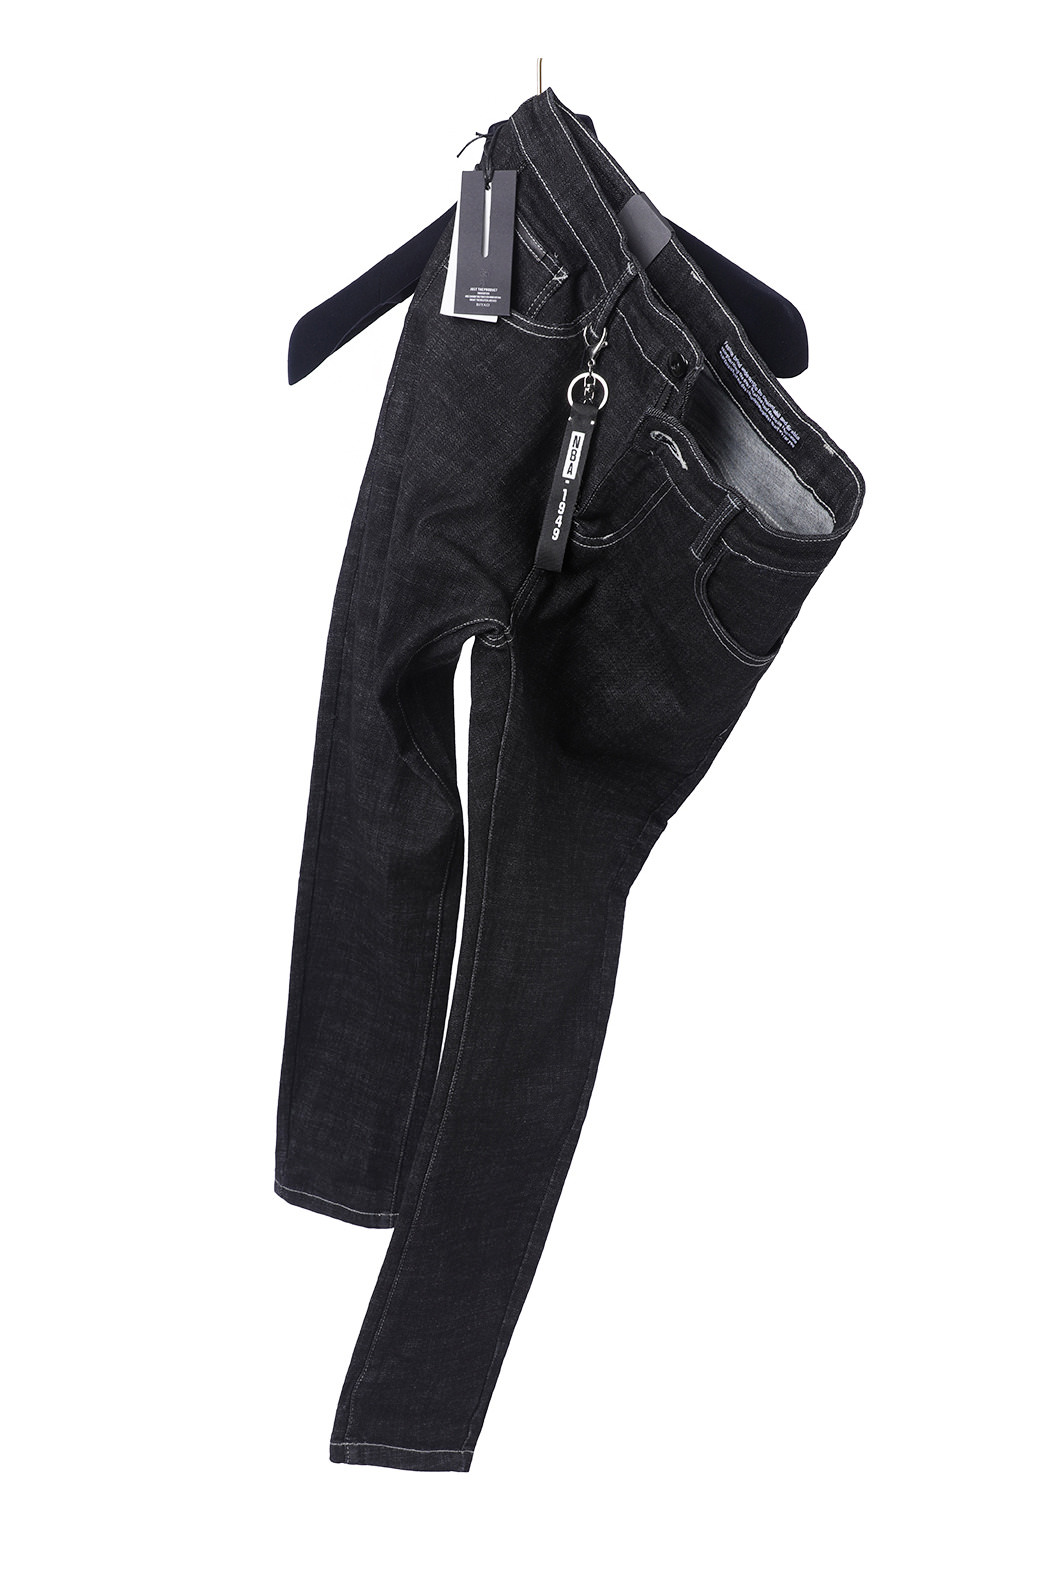 DIENE 1949 DENIM PANTS-BLACK